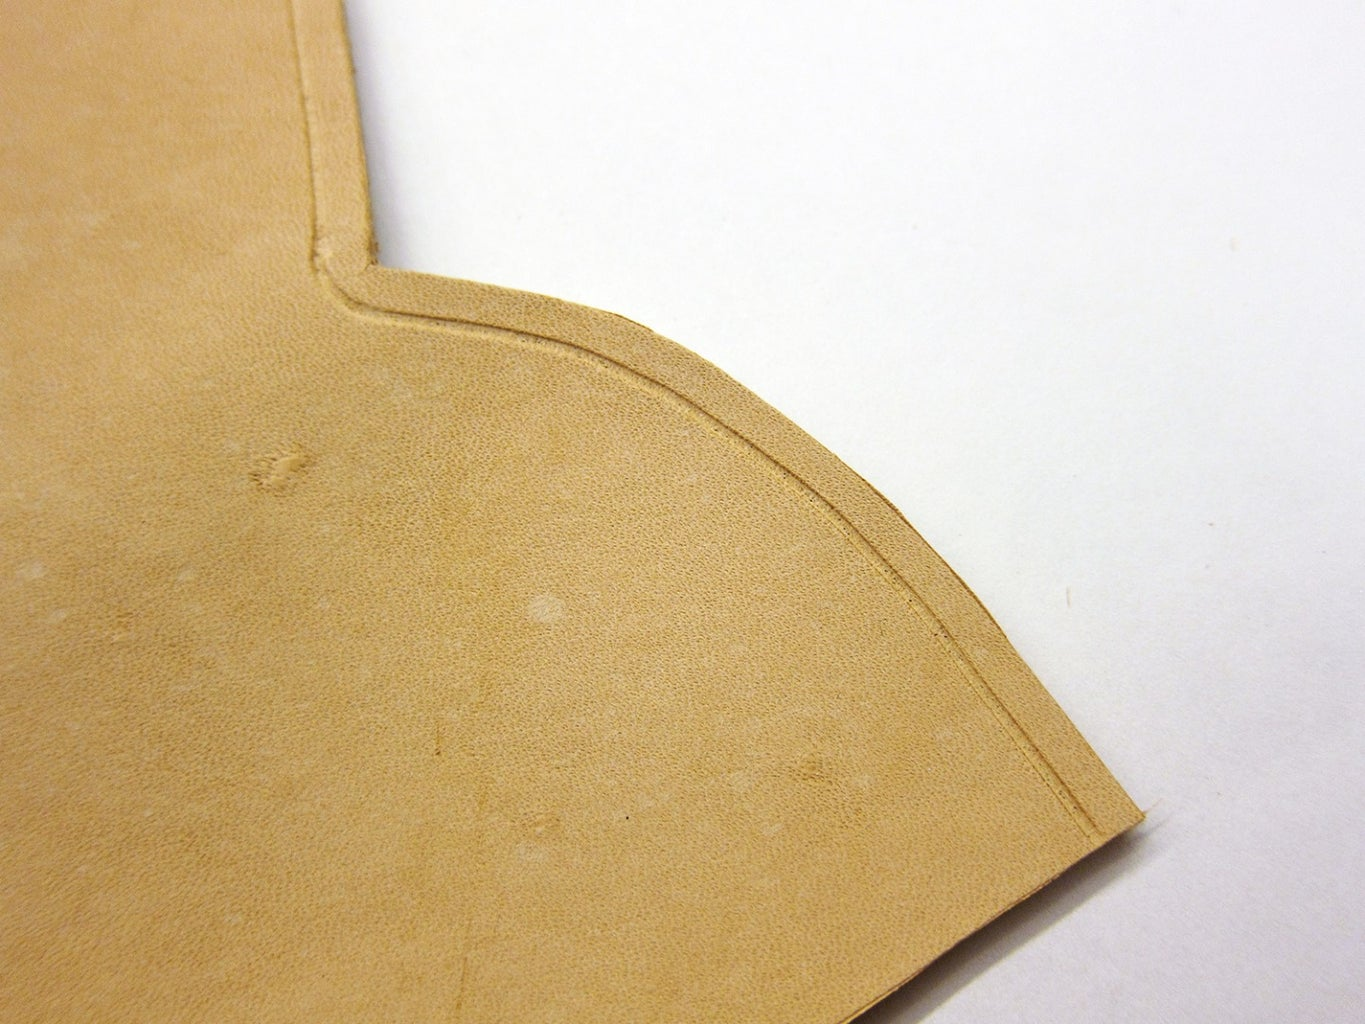 Make Stitching Grooves